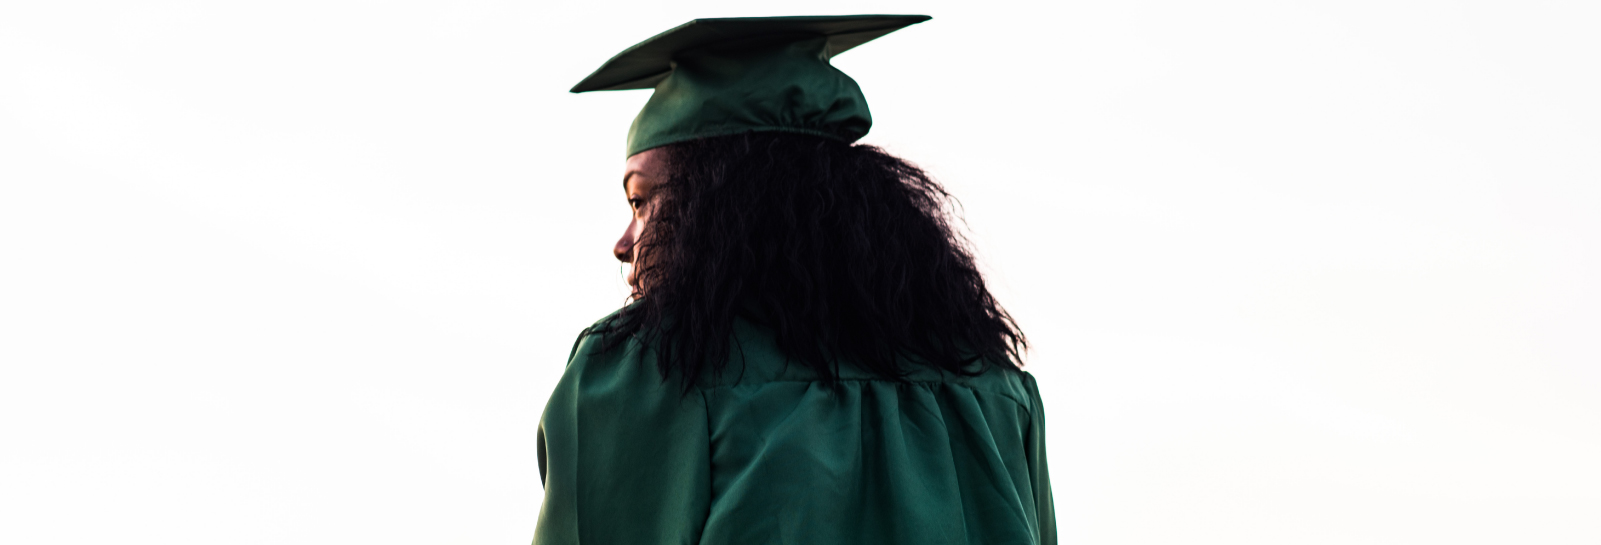 a behind shot of a woman in a graduation cap and gown